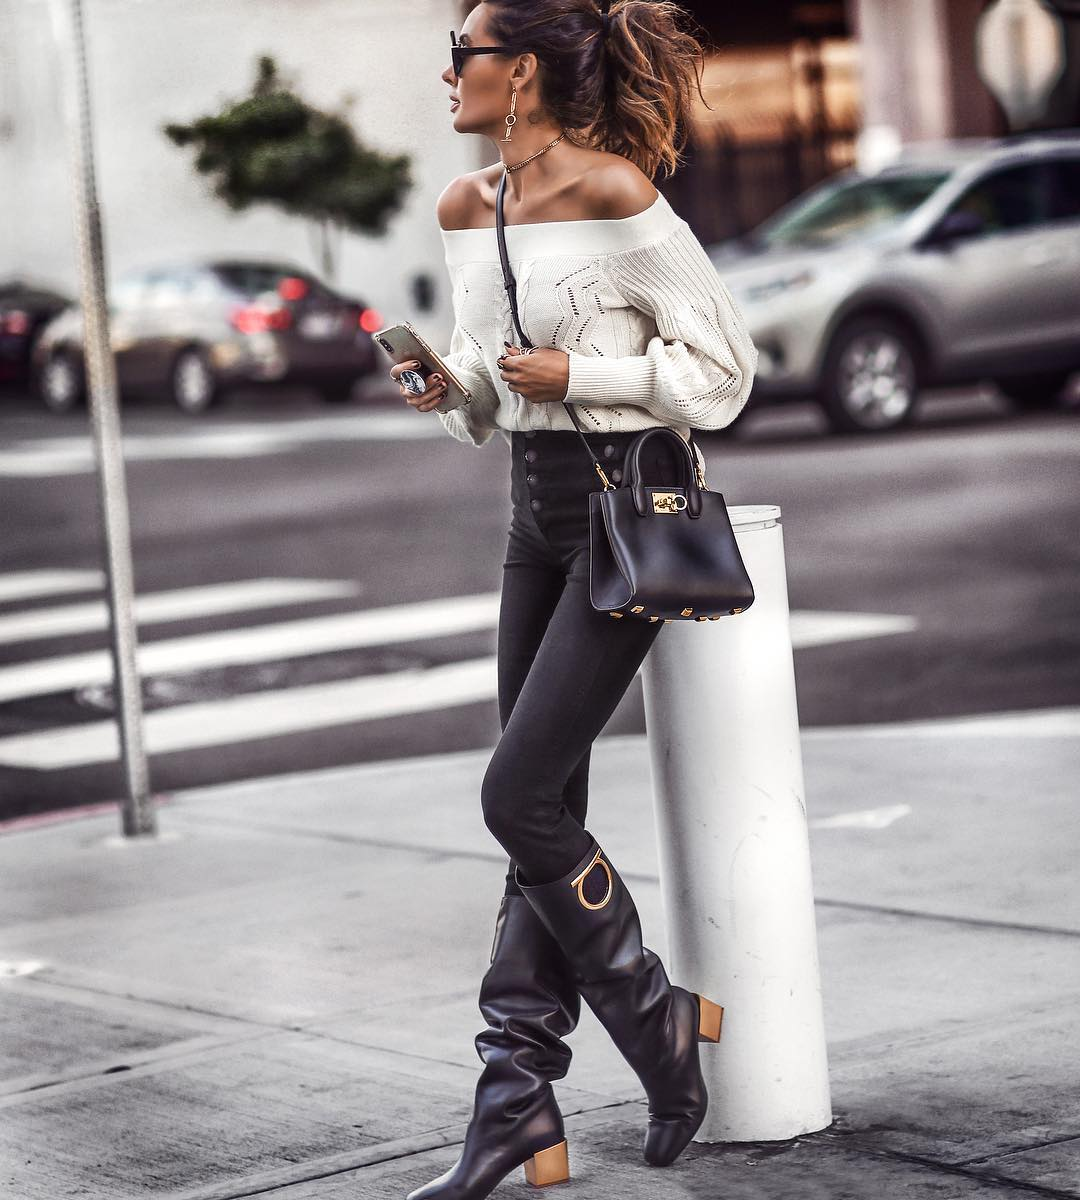 Fall Street Style | Fashioned Chic Blog